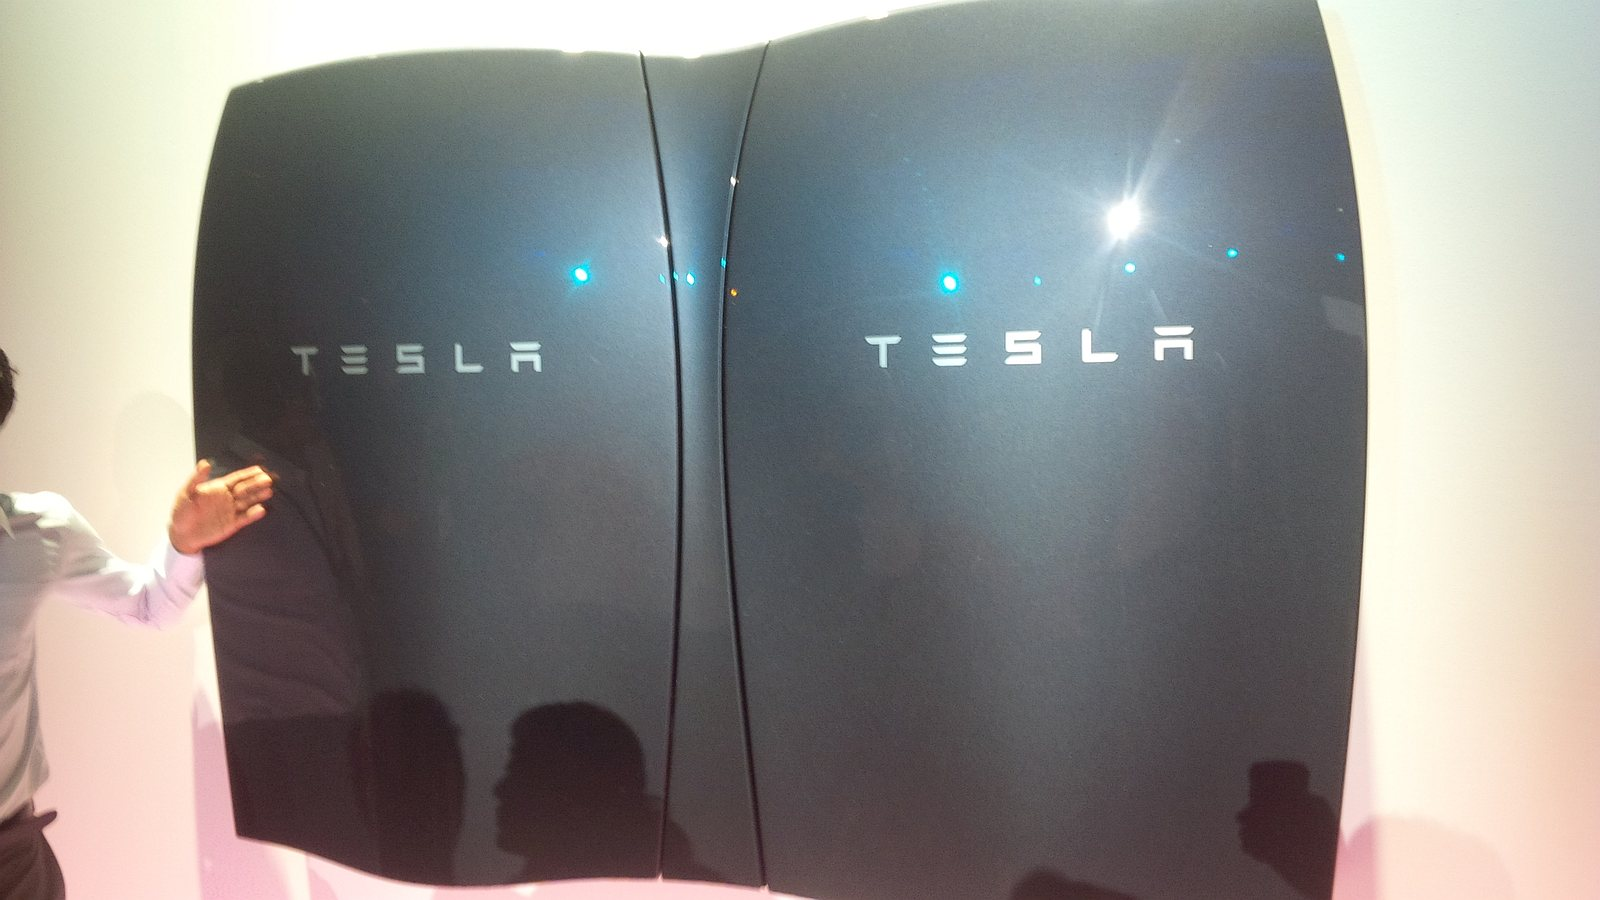 Tesla unveils a battery to power your home, completely off grid